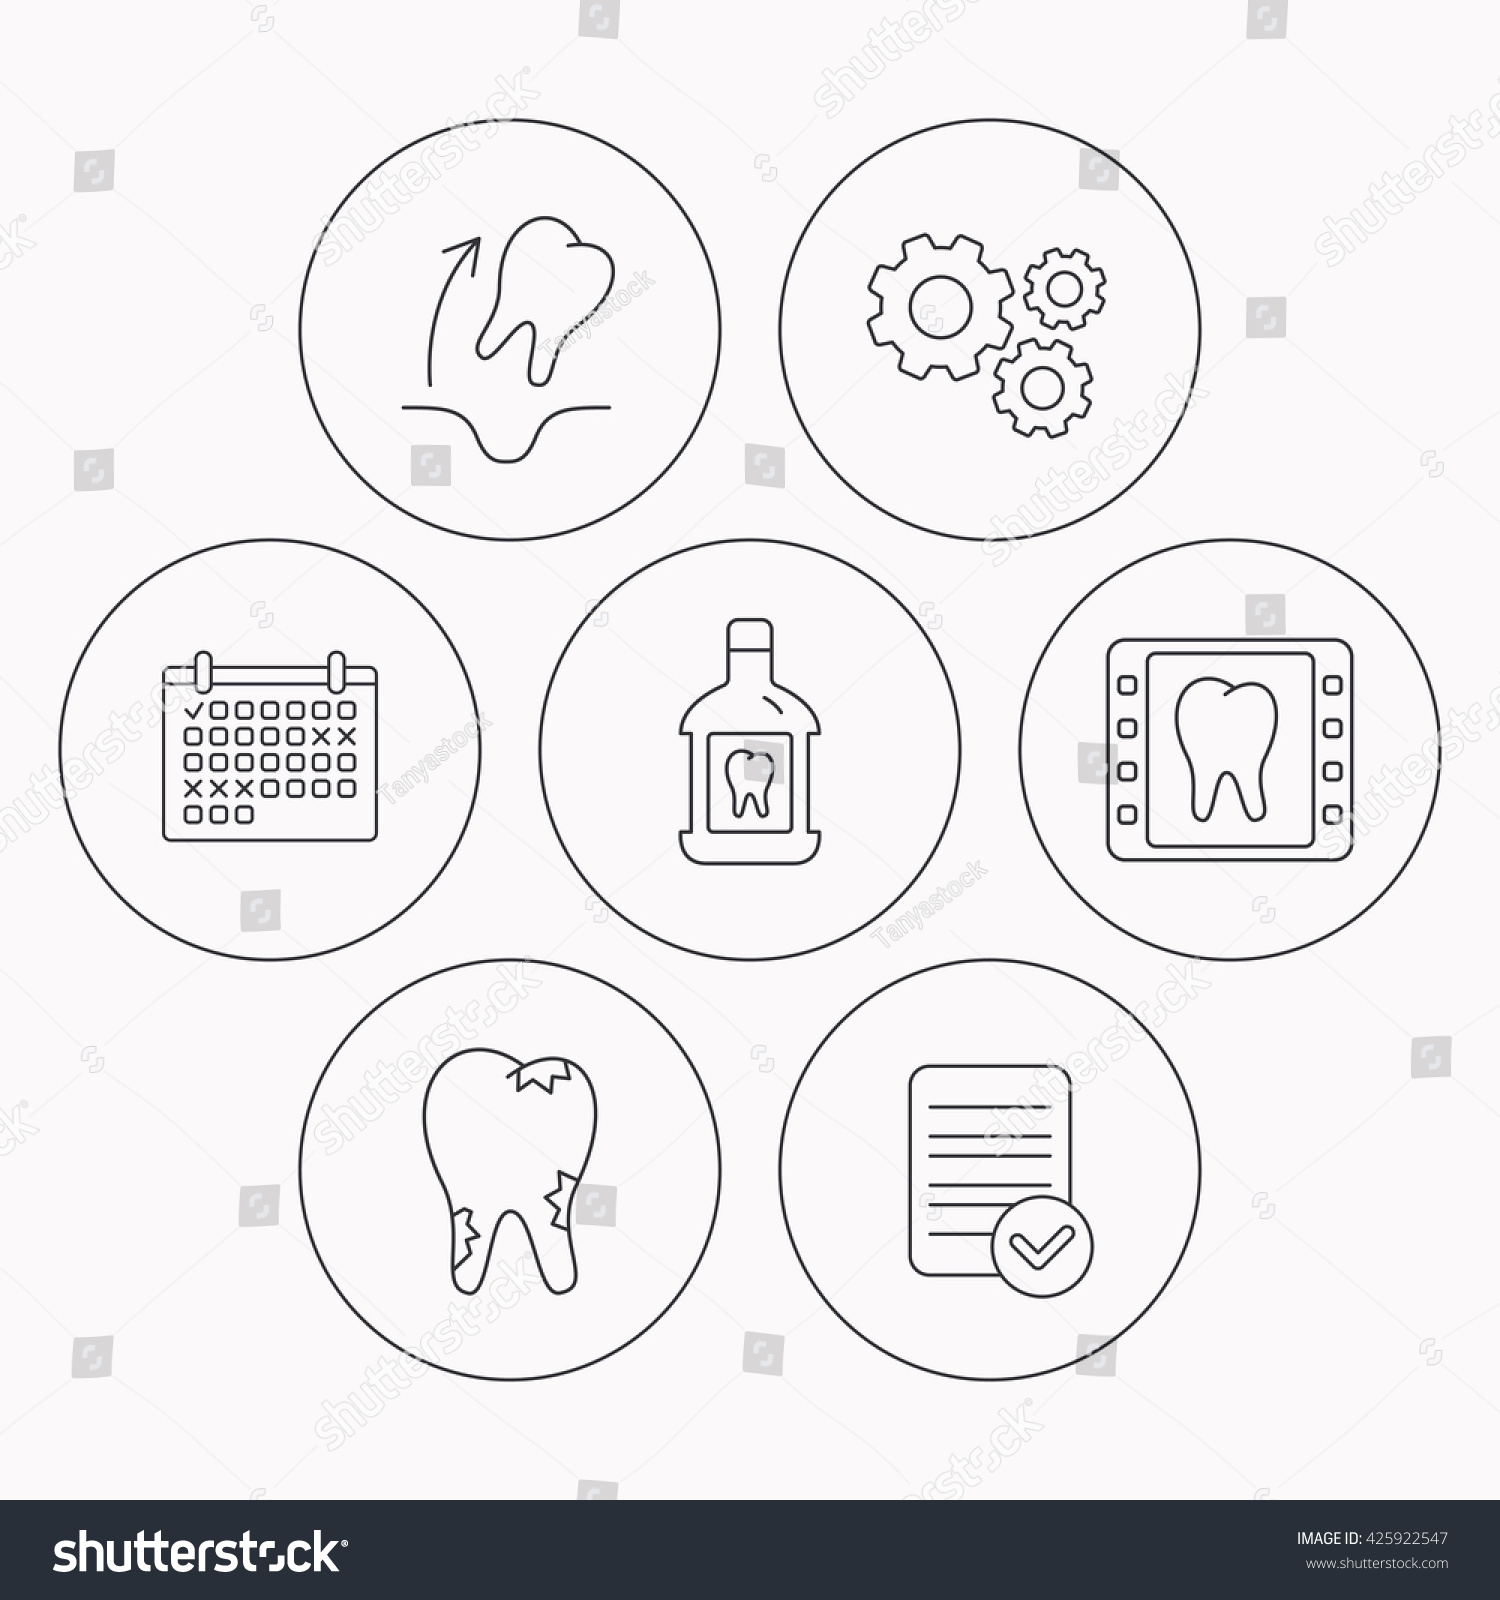 Tooth extraction caries and mouthwash icons Dental x-ray linear sign Check file calendar and cogwheel icons Vector